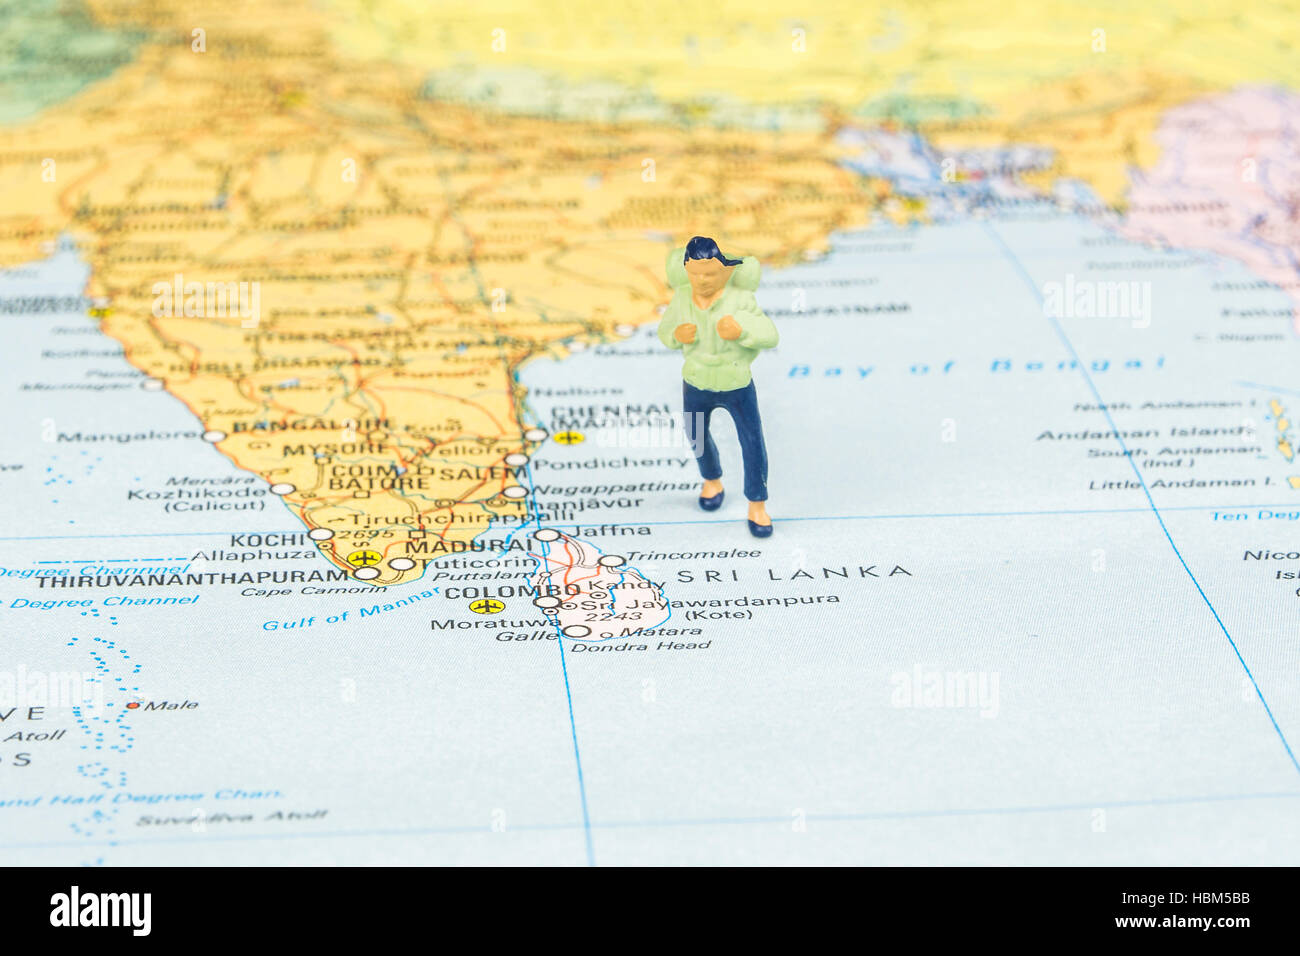 closeup of miniature figurine of young traveller standing on big map next to Sri lanka islands - Stock Image